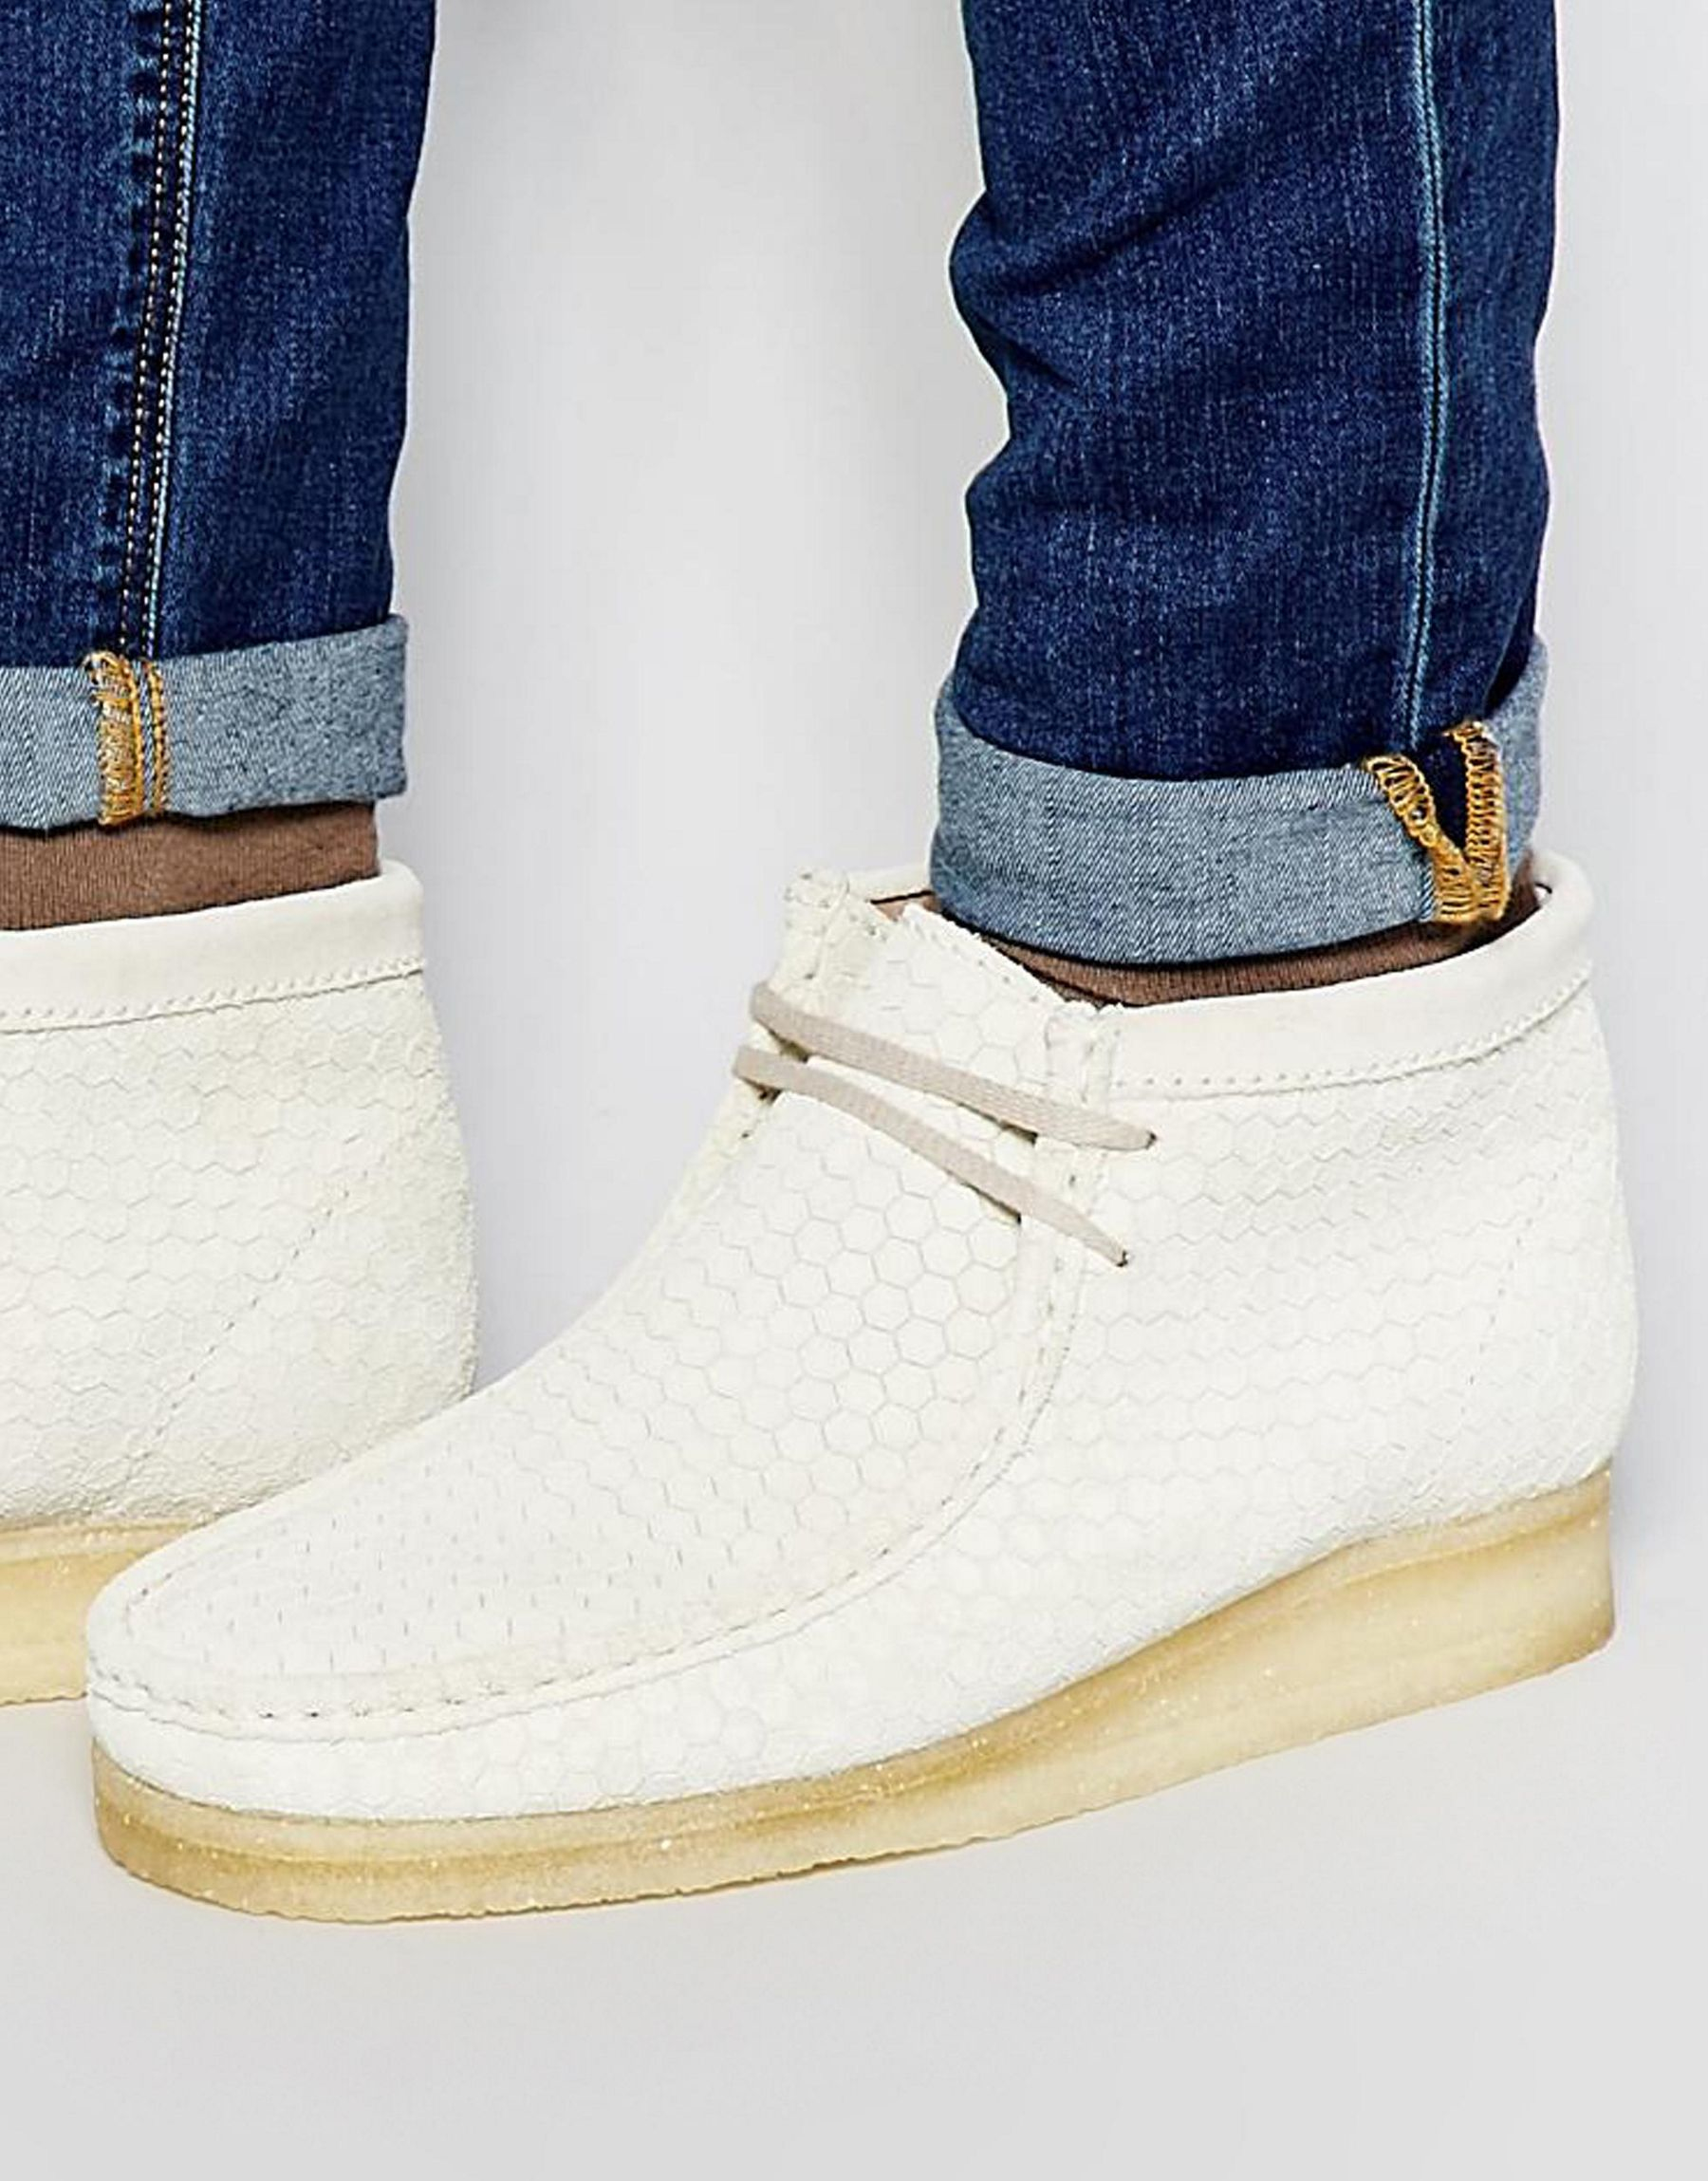 Lyst - Clarks Wallabee Hexagon Suede Ankle Boots in White c6b7ab76e8